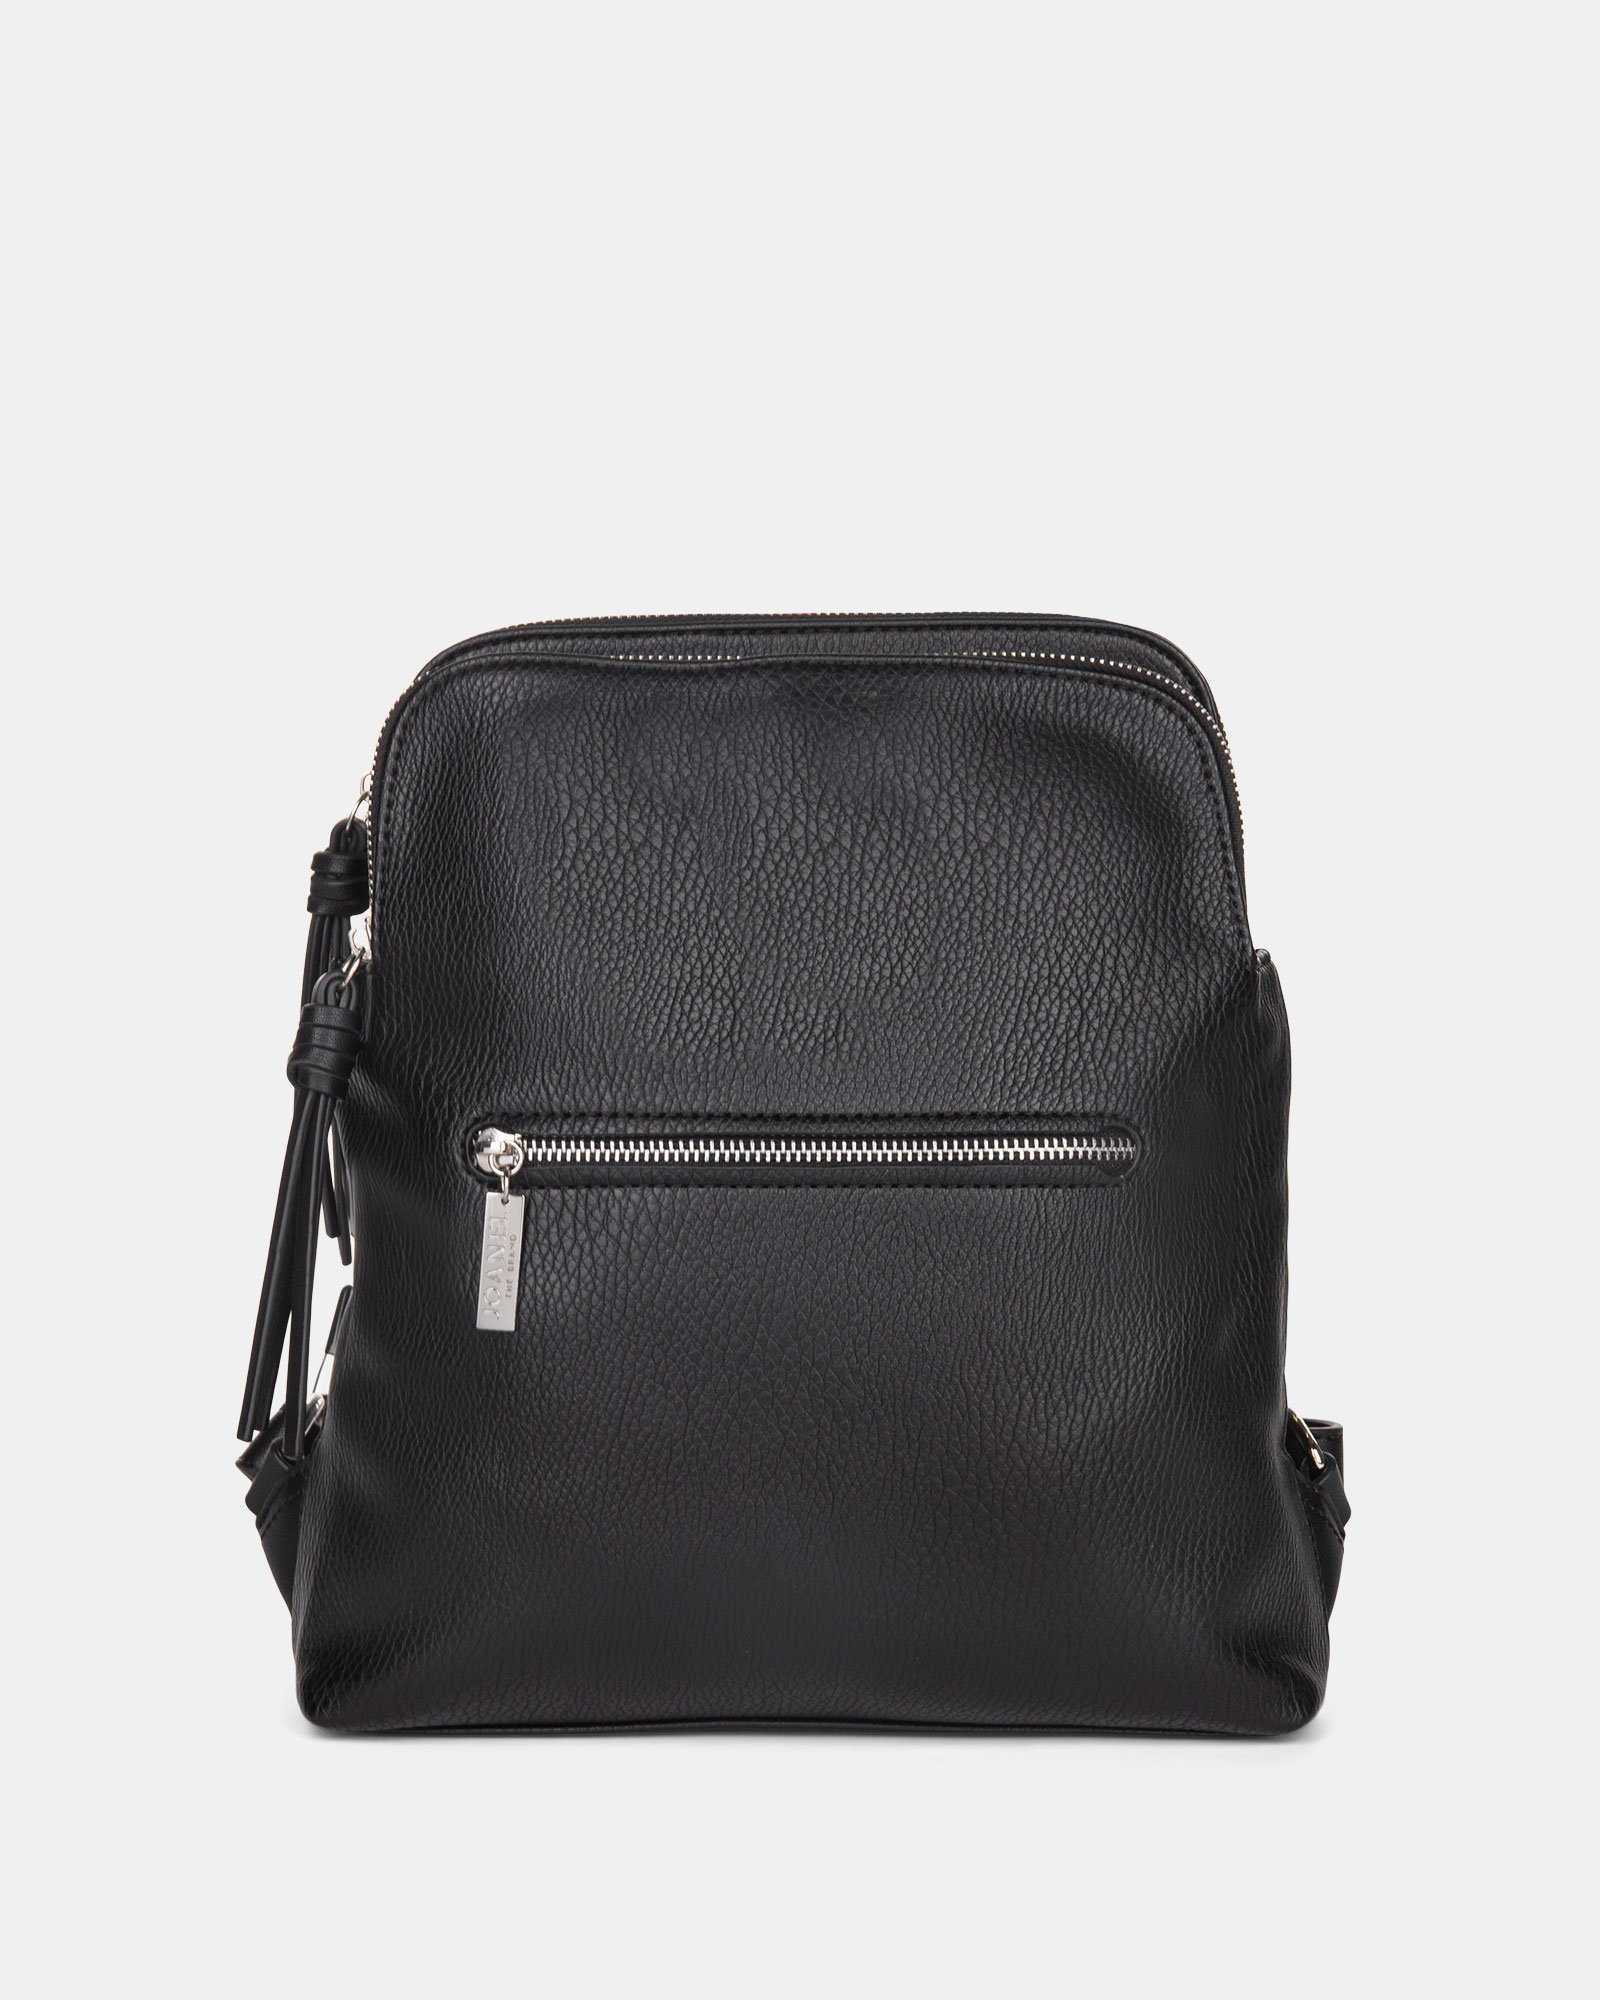 Zoom - BACKPACK with TWO zippered main section - BLACK - Joanel - Zoom